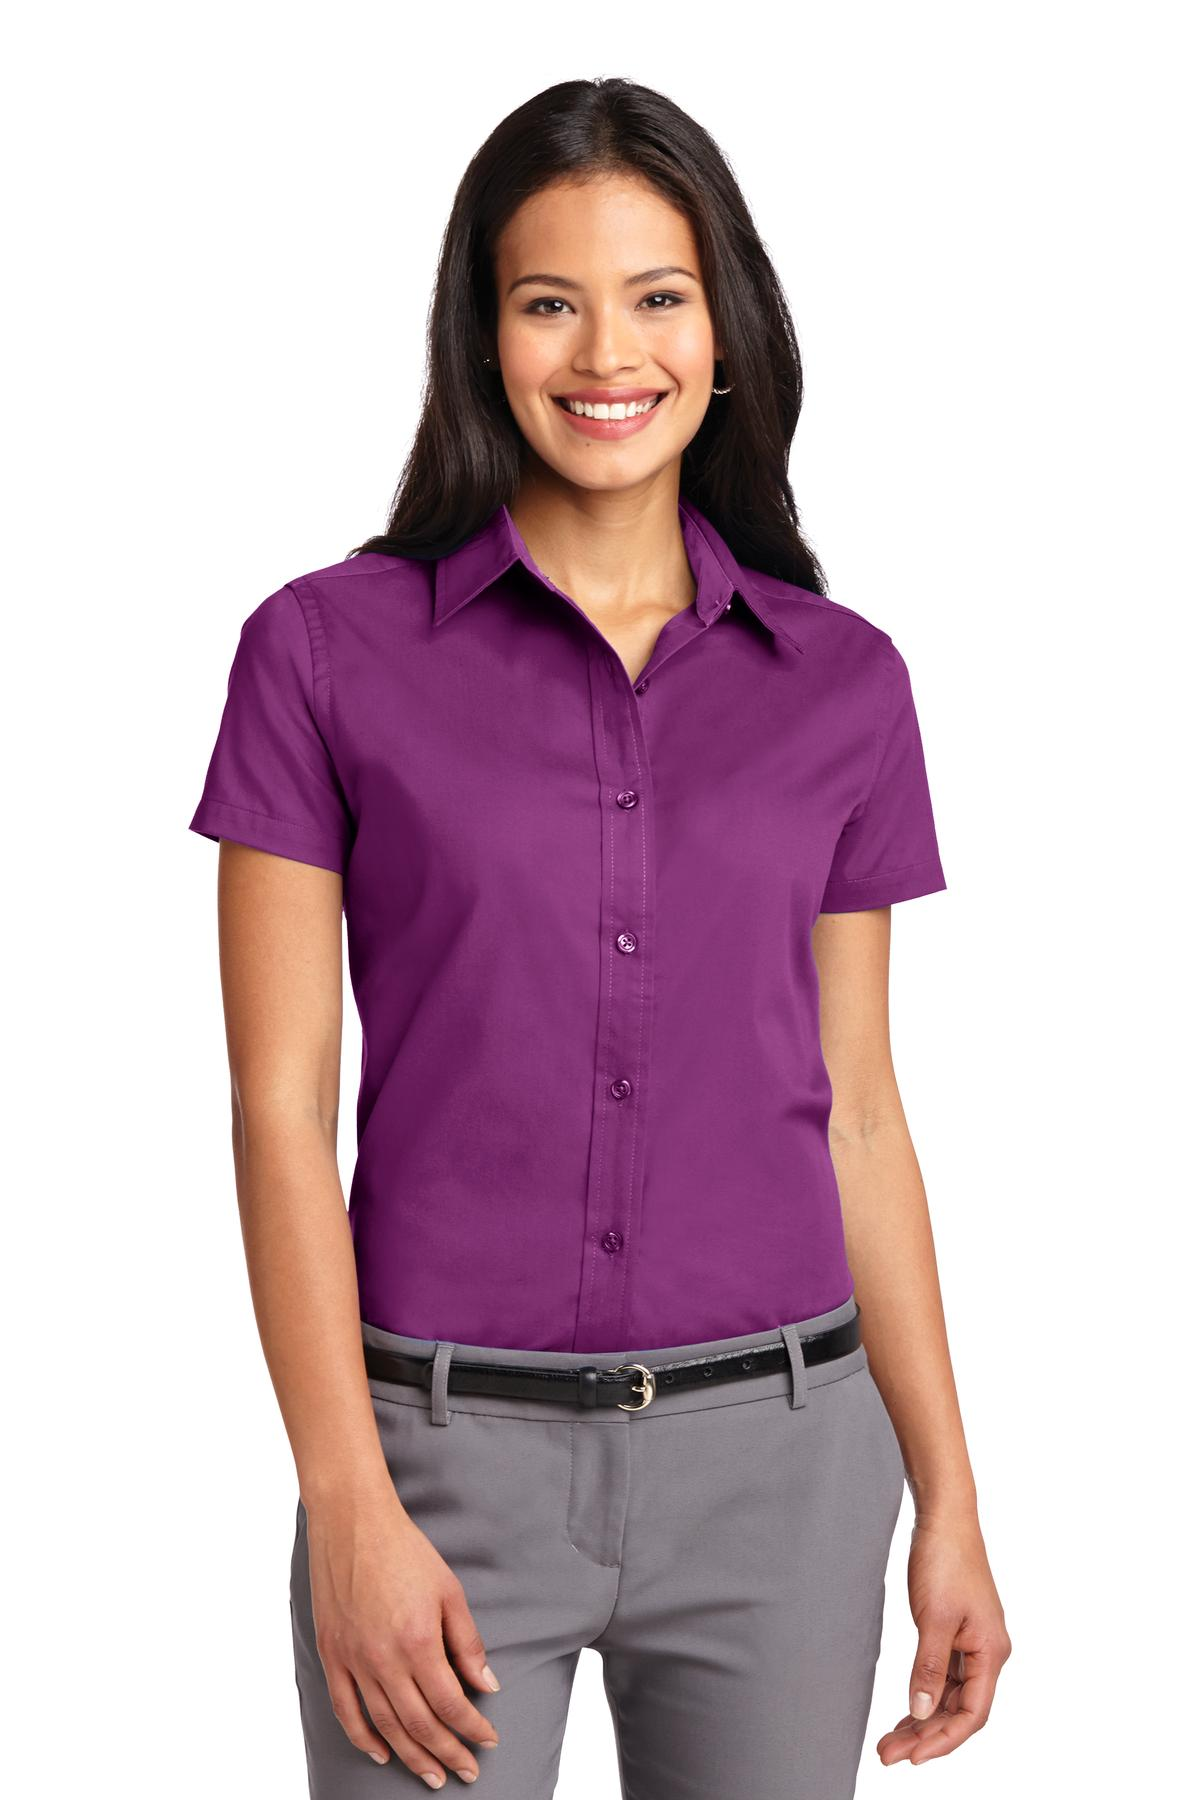 Port Authority ®  Ladies Short Sleeve Easy Care  Shirt.  L508 - Deep Berry